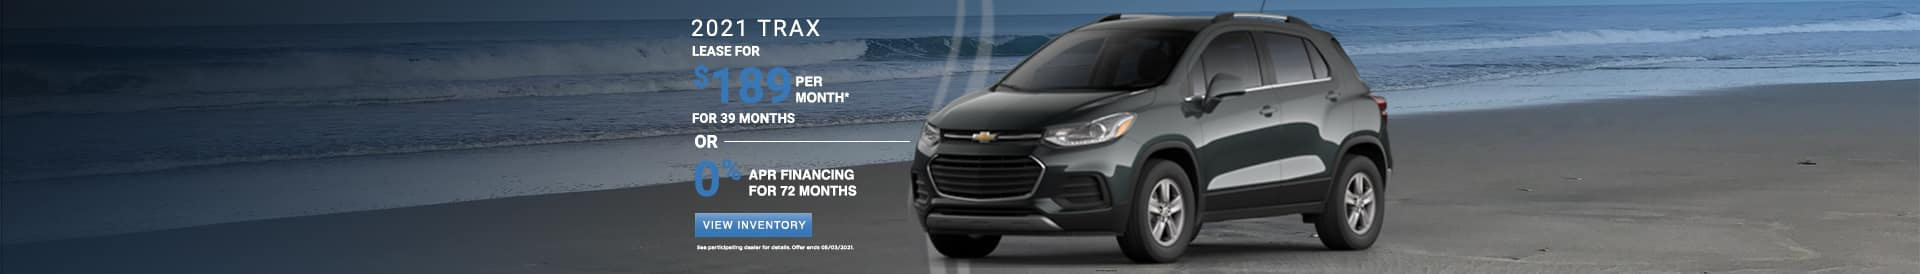 Lease a new 2021 Chevy Trax for $189 per month. See dealer for details.